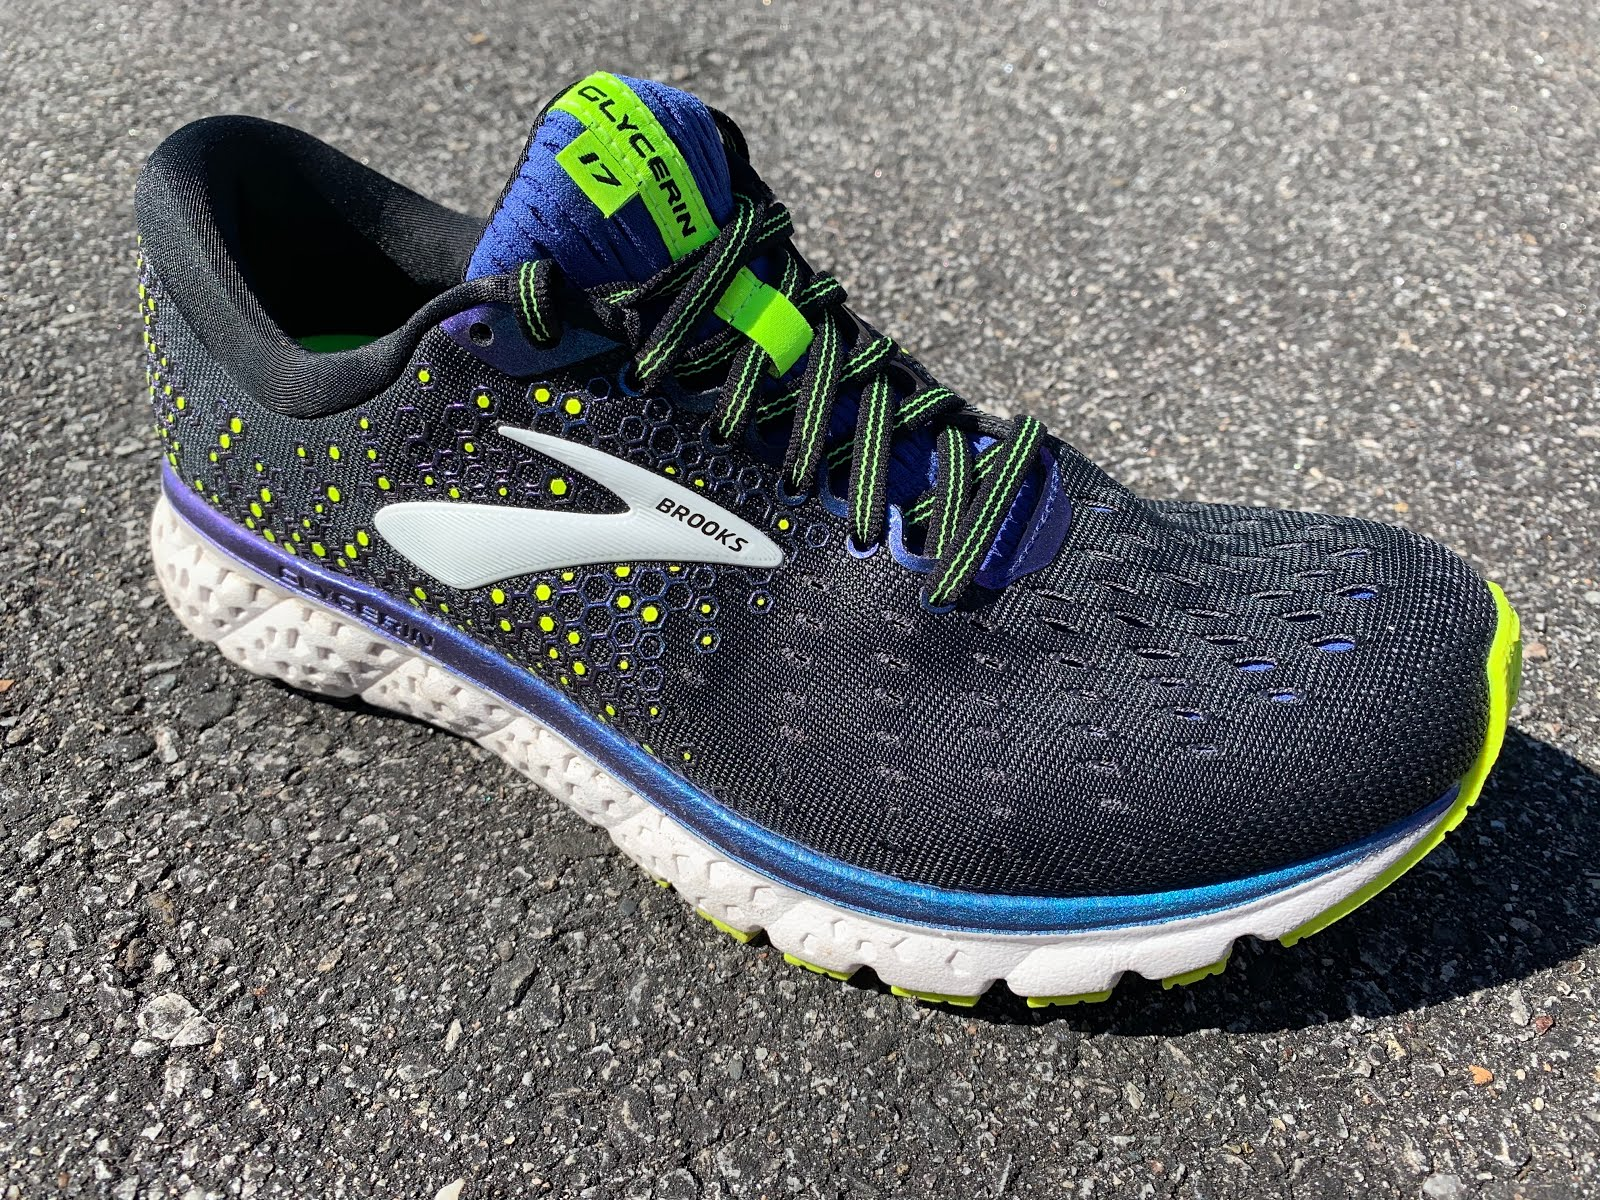 67f28b3886 Brooks Running Glycerin 17 Multi Tester Review: Plush, Flexible and Lively